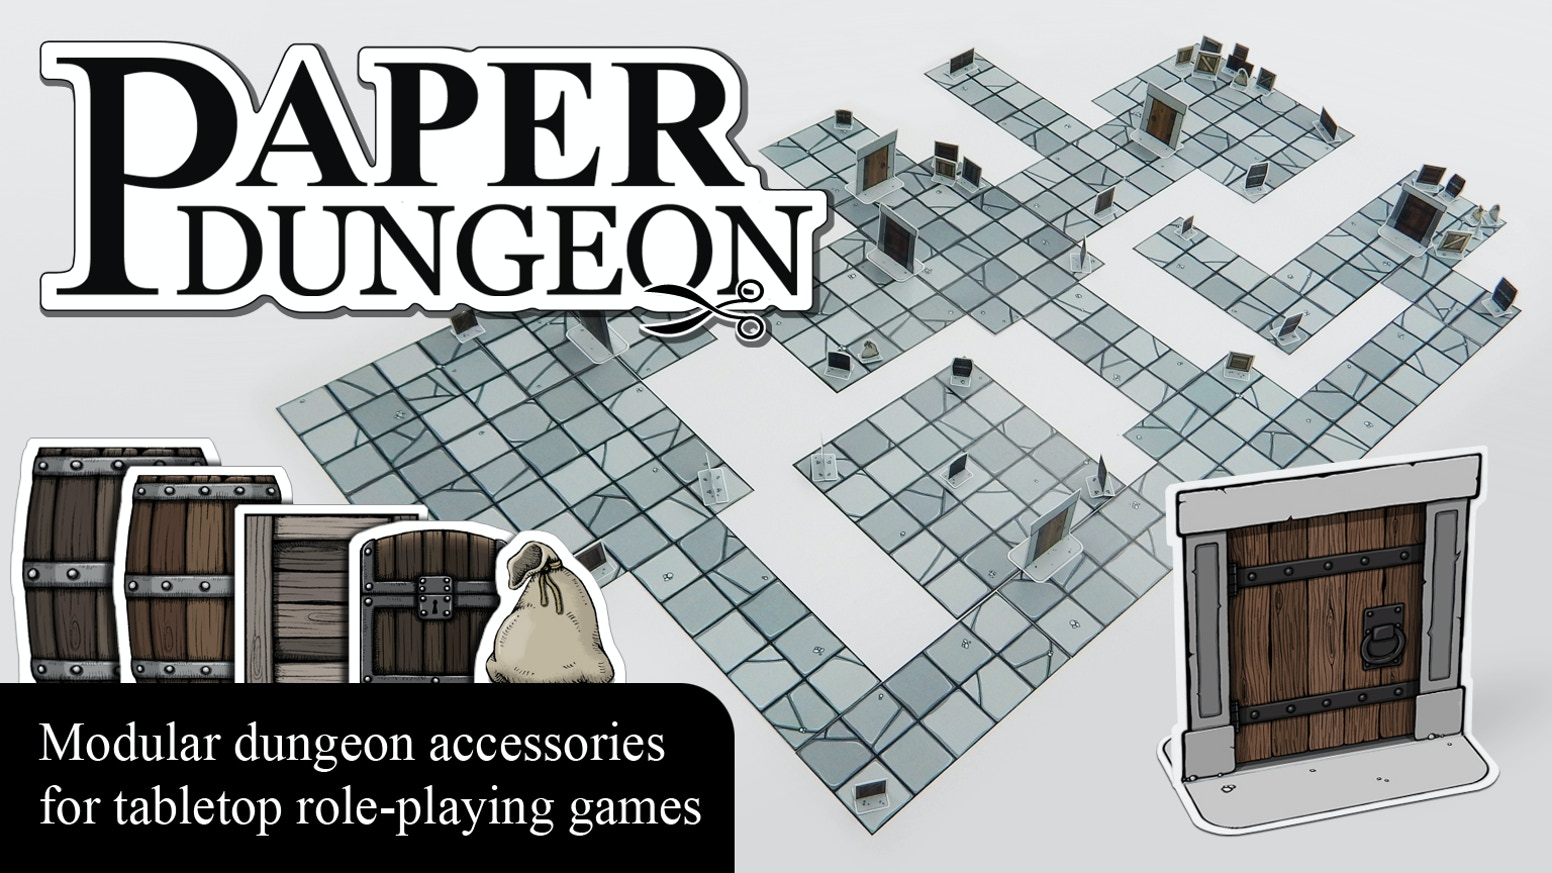 paper dungeon modular dungeon accessories for tabletop rpg by jean